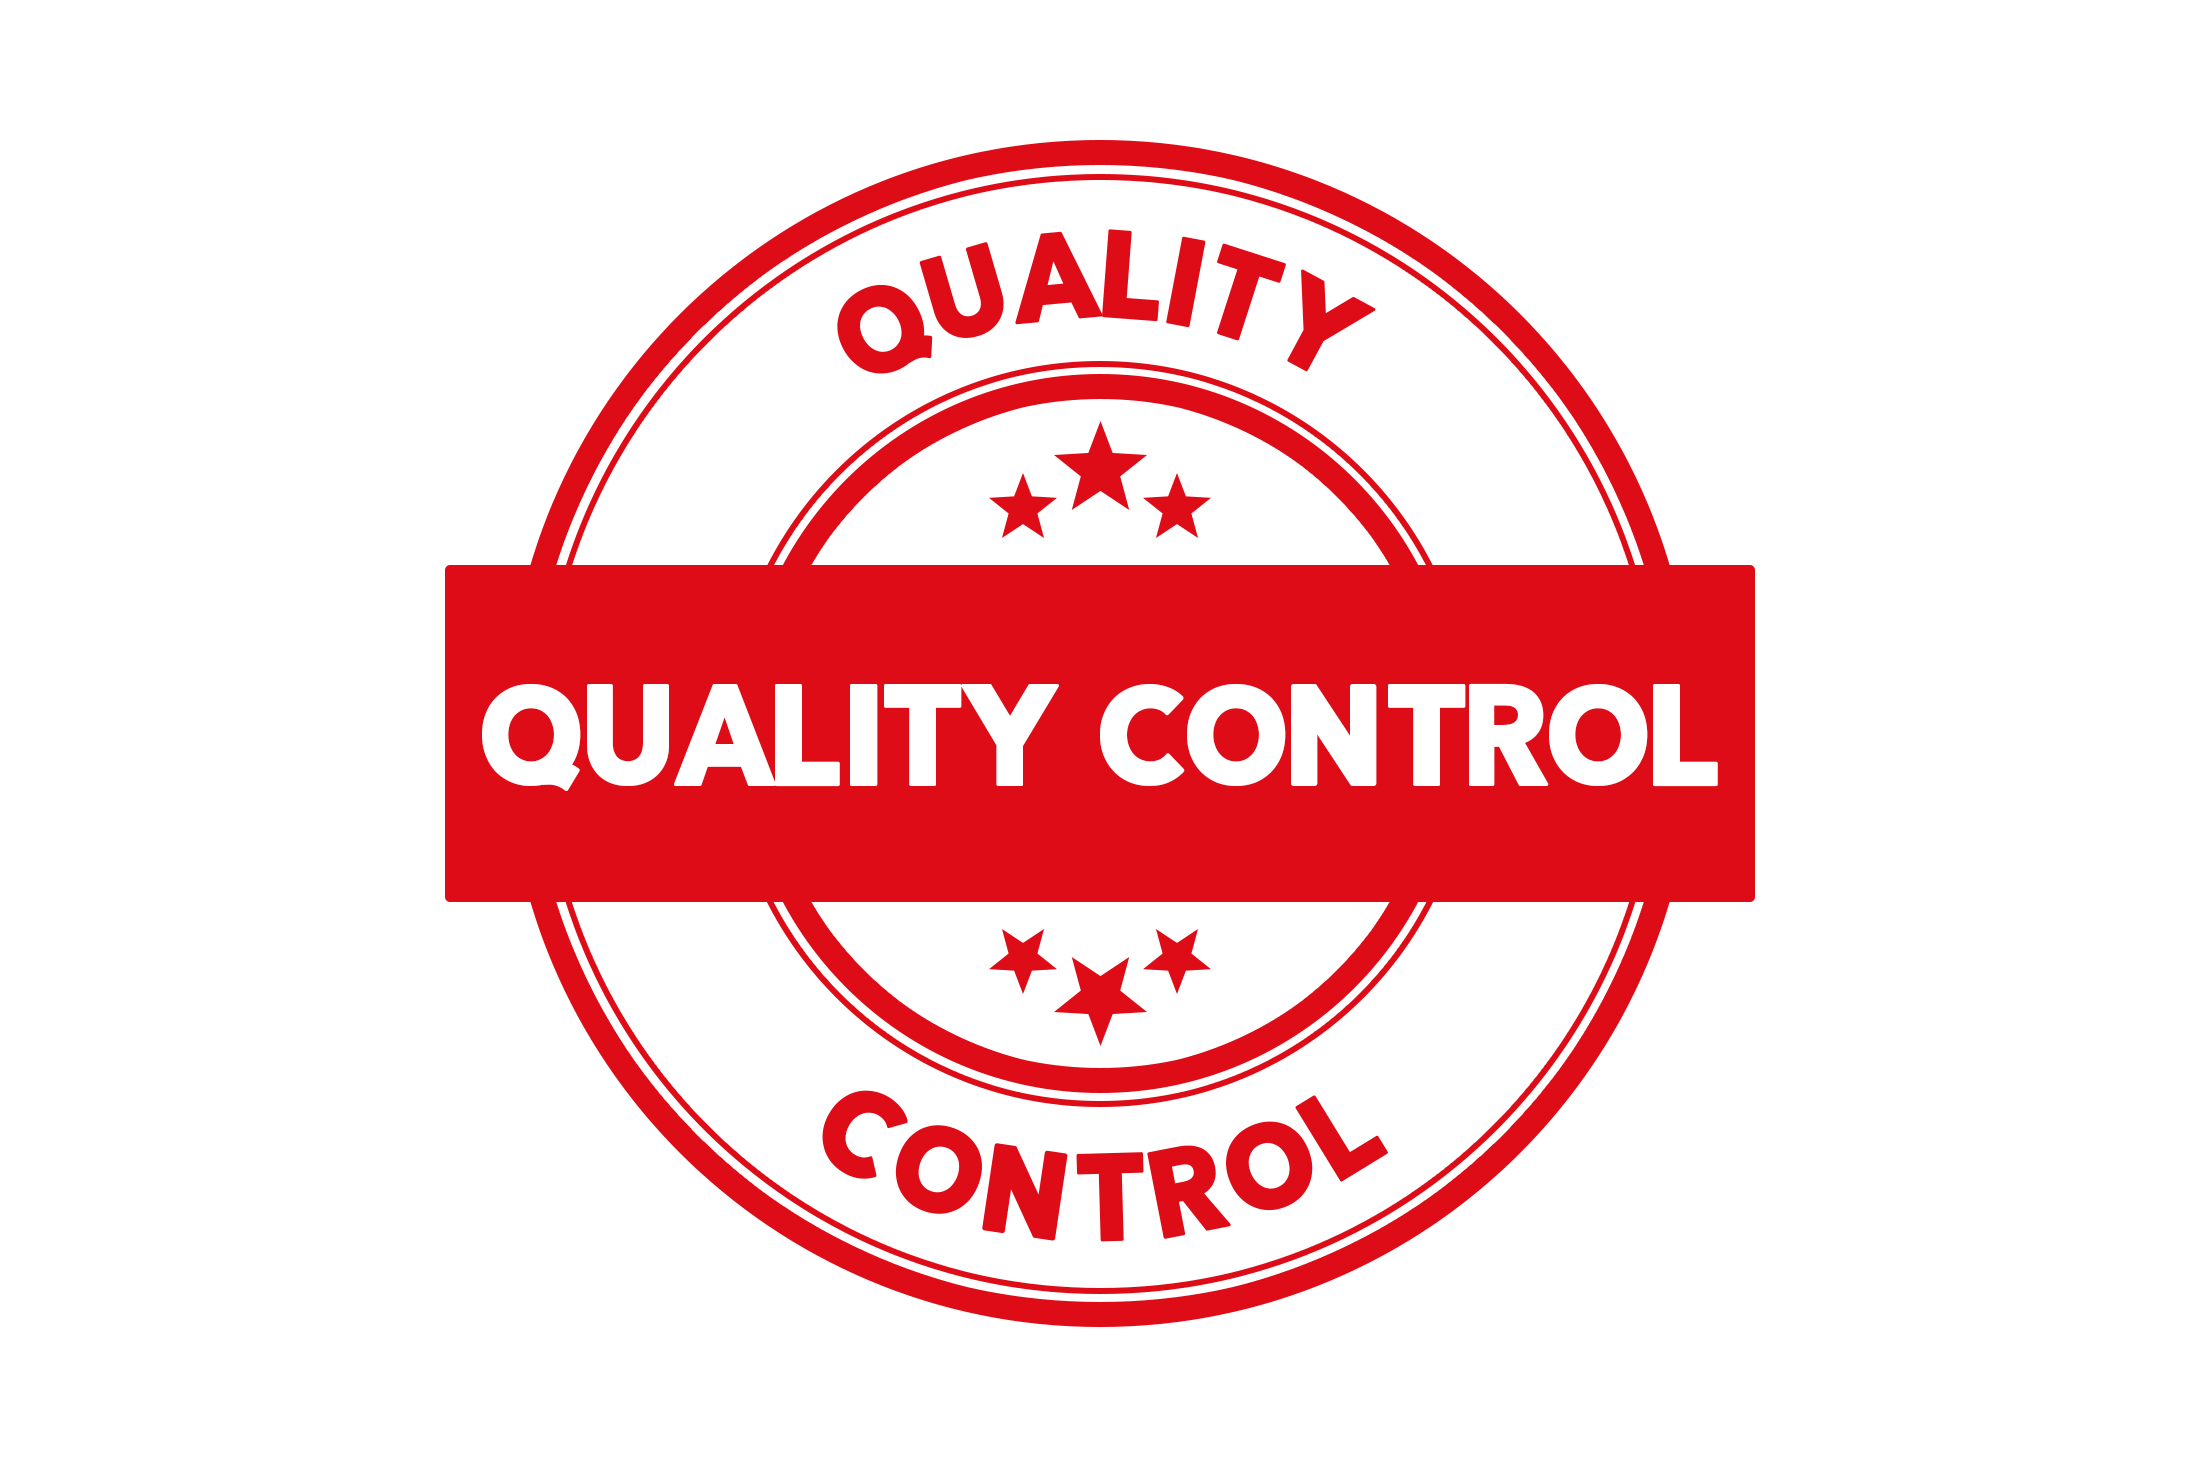 Round quality control stamp PSD